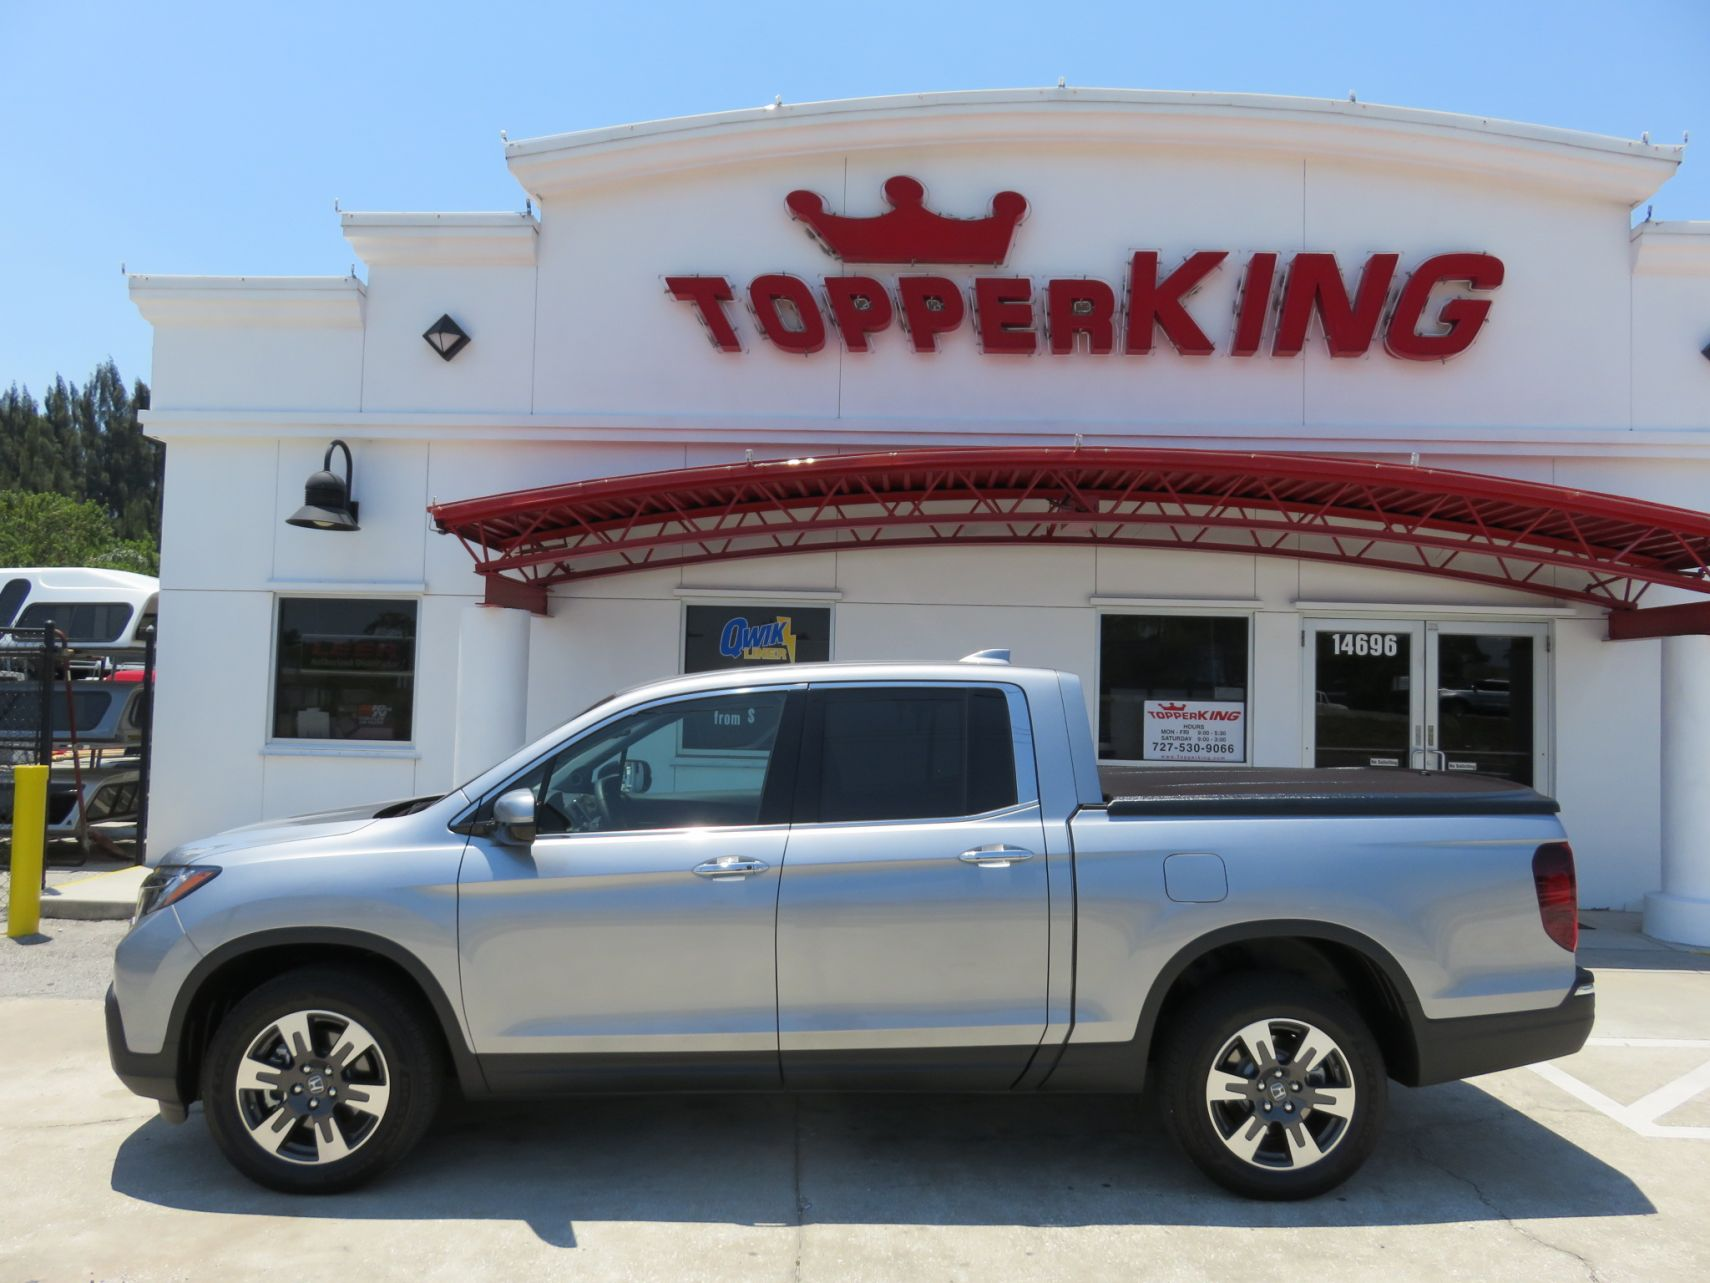 2019 Silver Honda Ridgeline Undercover Elite Tint Custom Hitch by TopperKING in Brandon, FL 813-689-2449 or Clearwater, FL 727-530-9066. Call today!